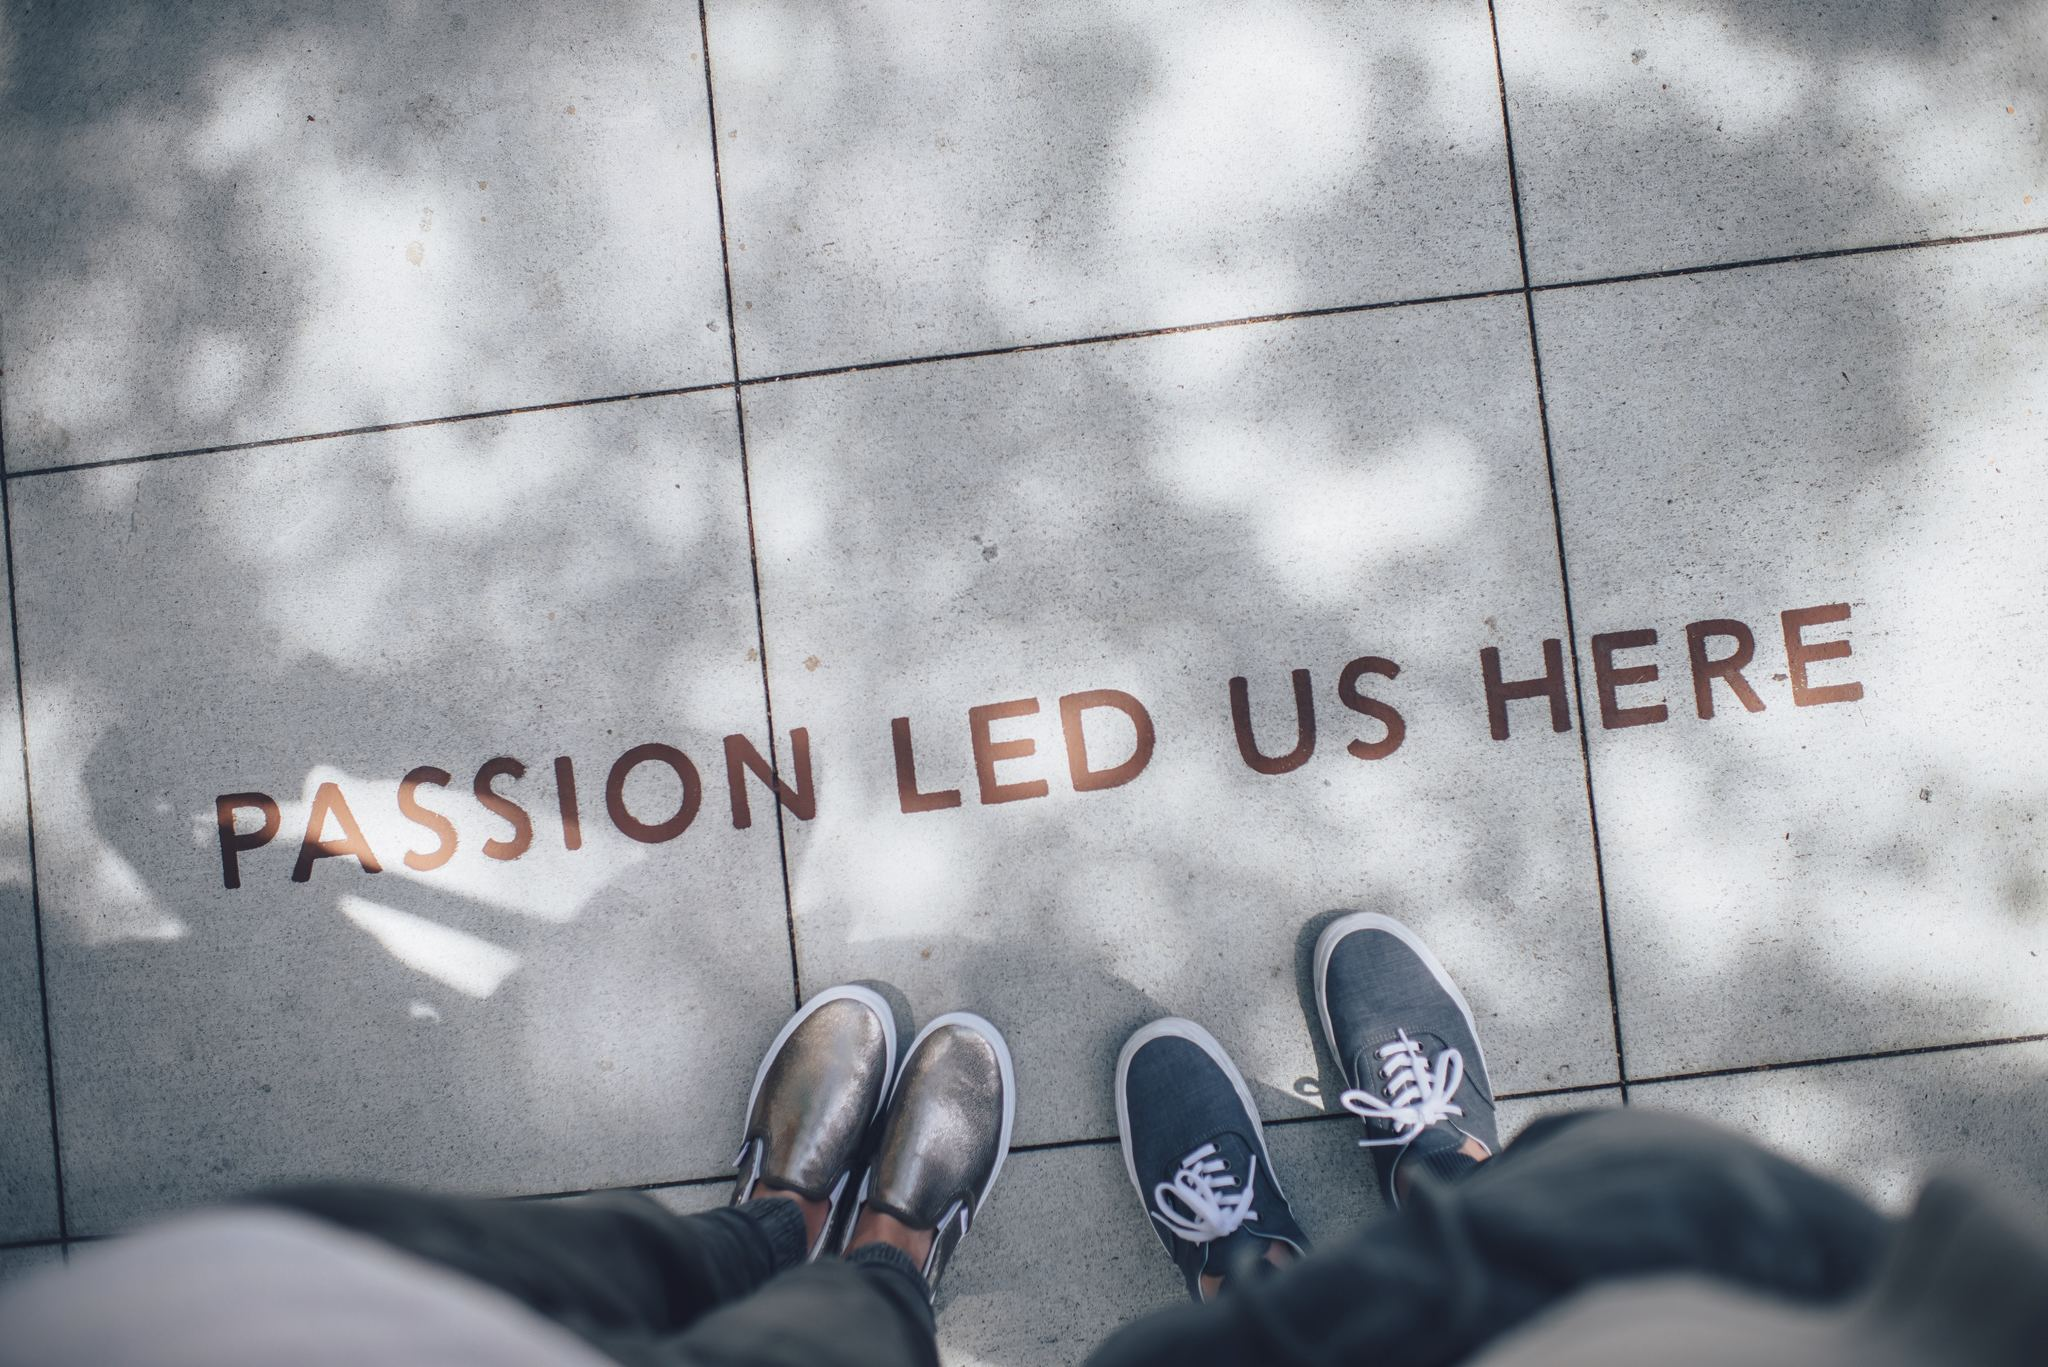 Feet on sidewalk, Passion Led Us here in black text